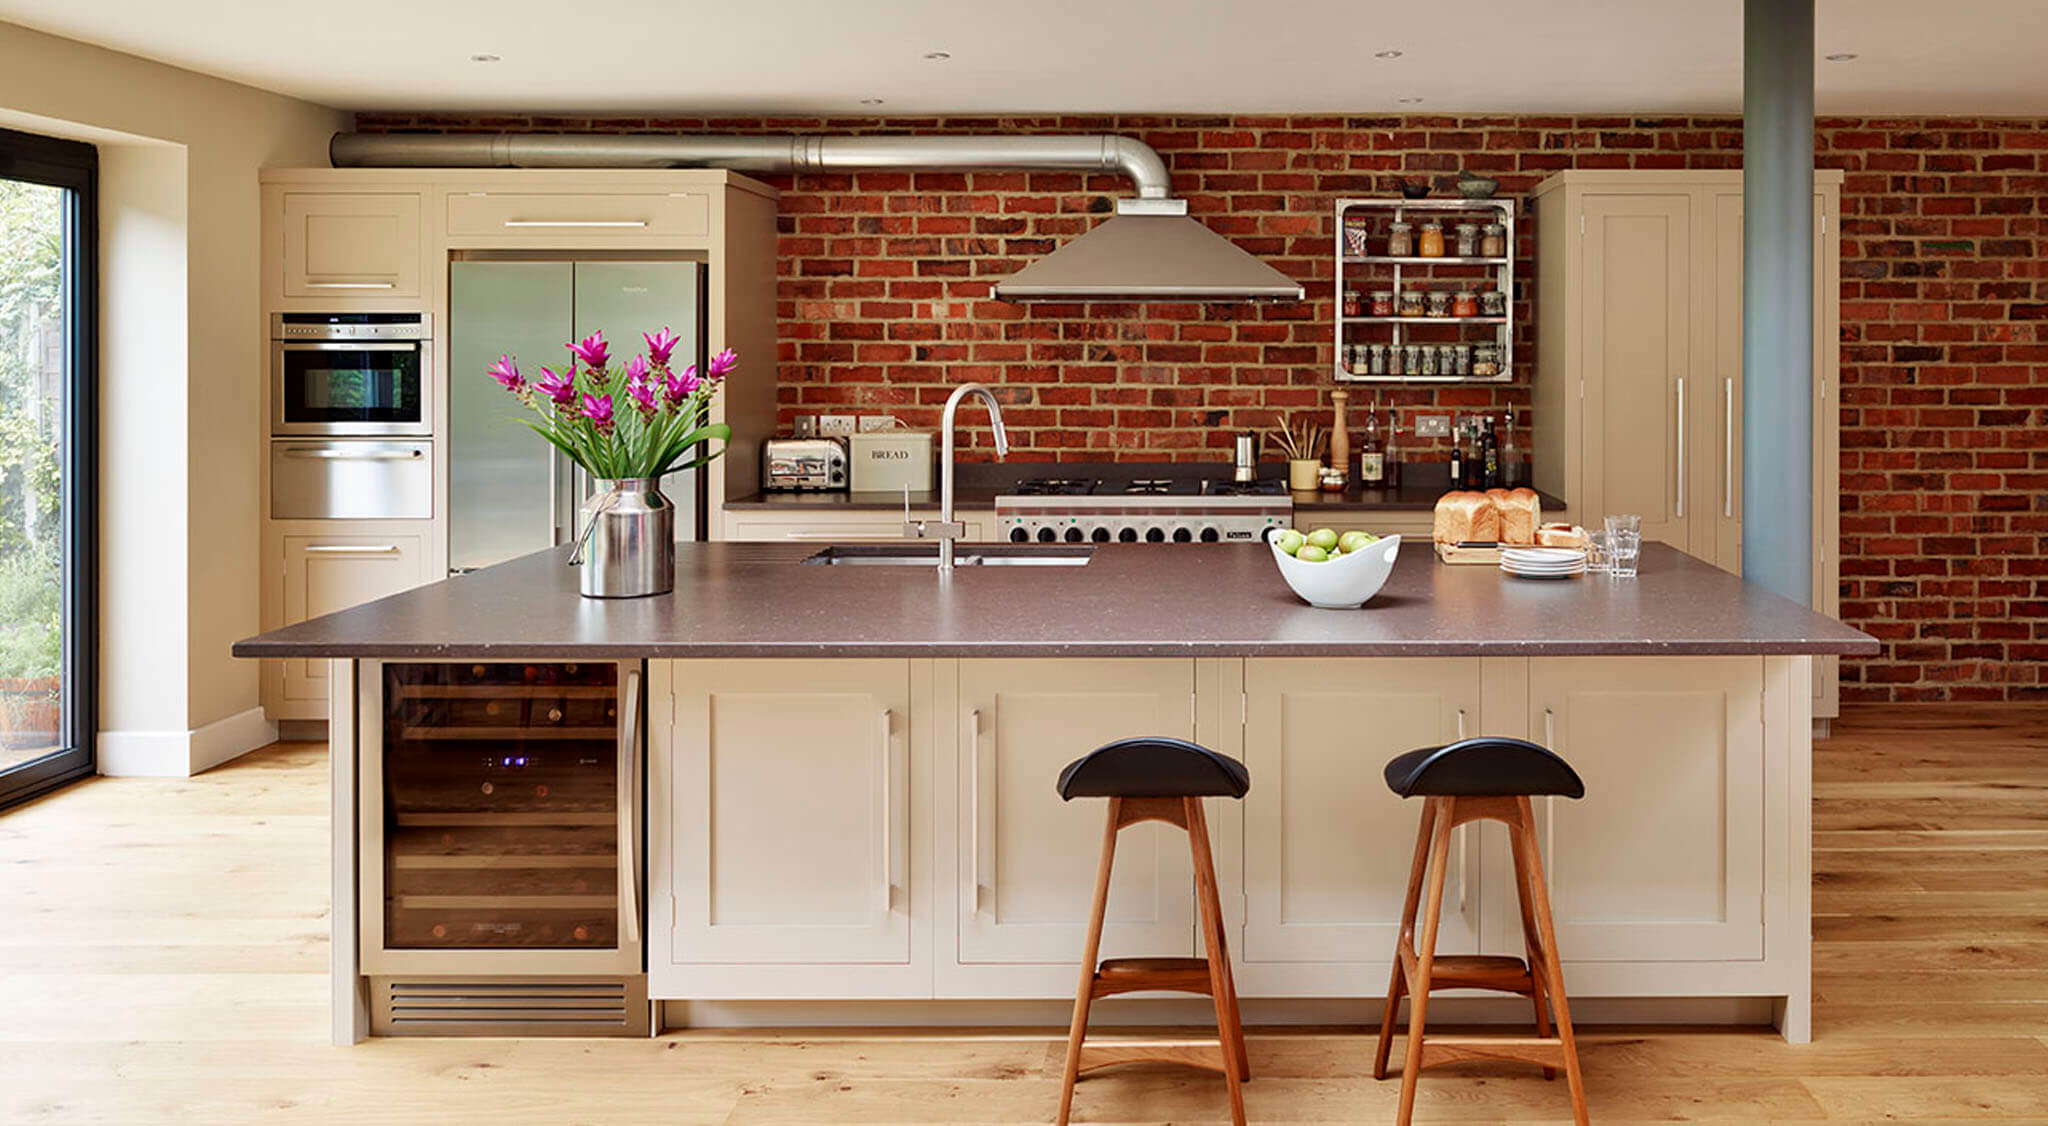 Shaker Kitchen Design With Exposed Bricks